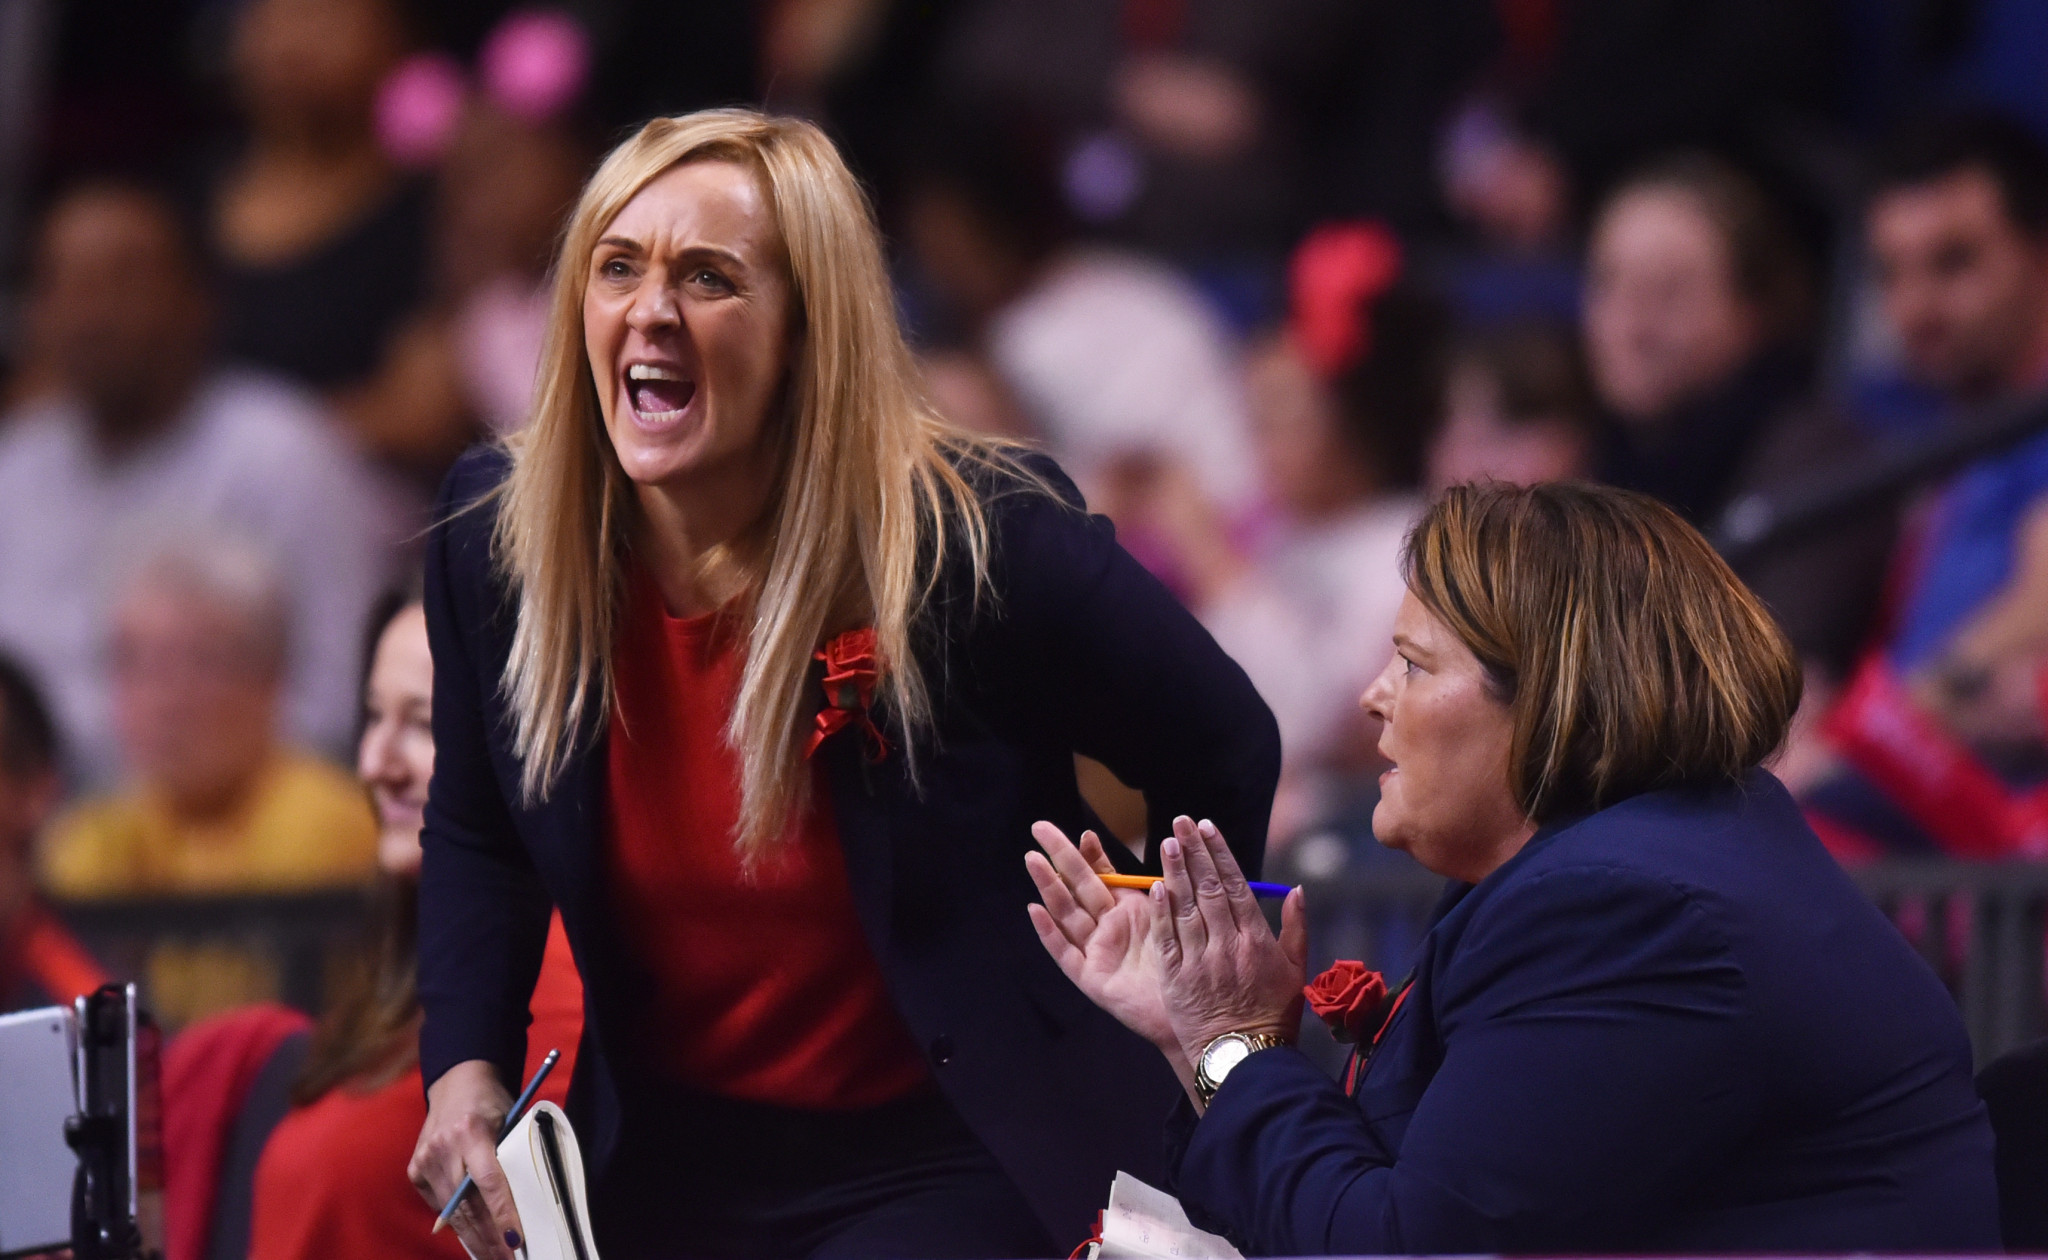 Tracey Neville to step down as England Netball head coach following 2019 World Cup